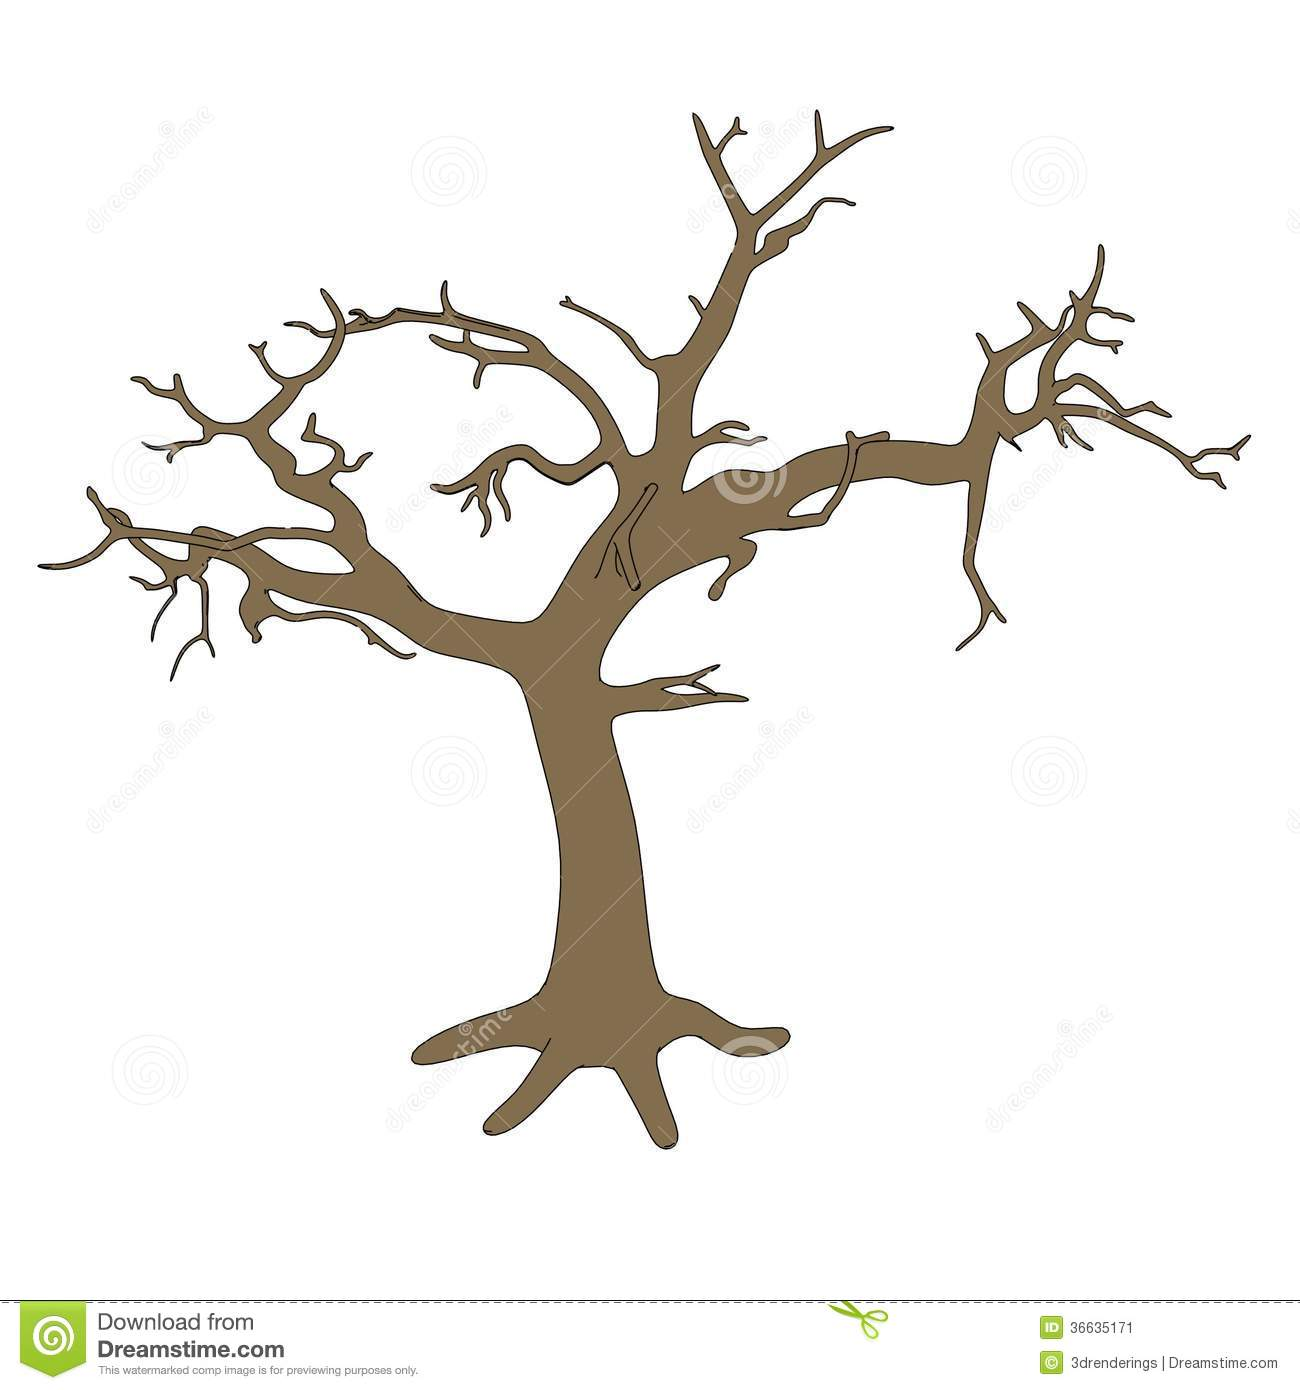 Cartoon Dead Tree Stock Illustrations 2 820 Cartoon Dead Tree Stock Illustrations Vectors Clipart Dreamstime Download and use this free footage for your private/commercial projects. dreamstime com